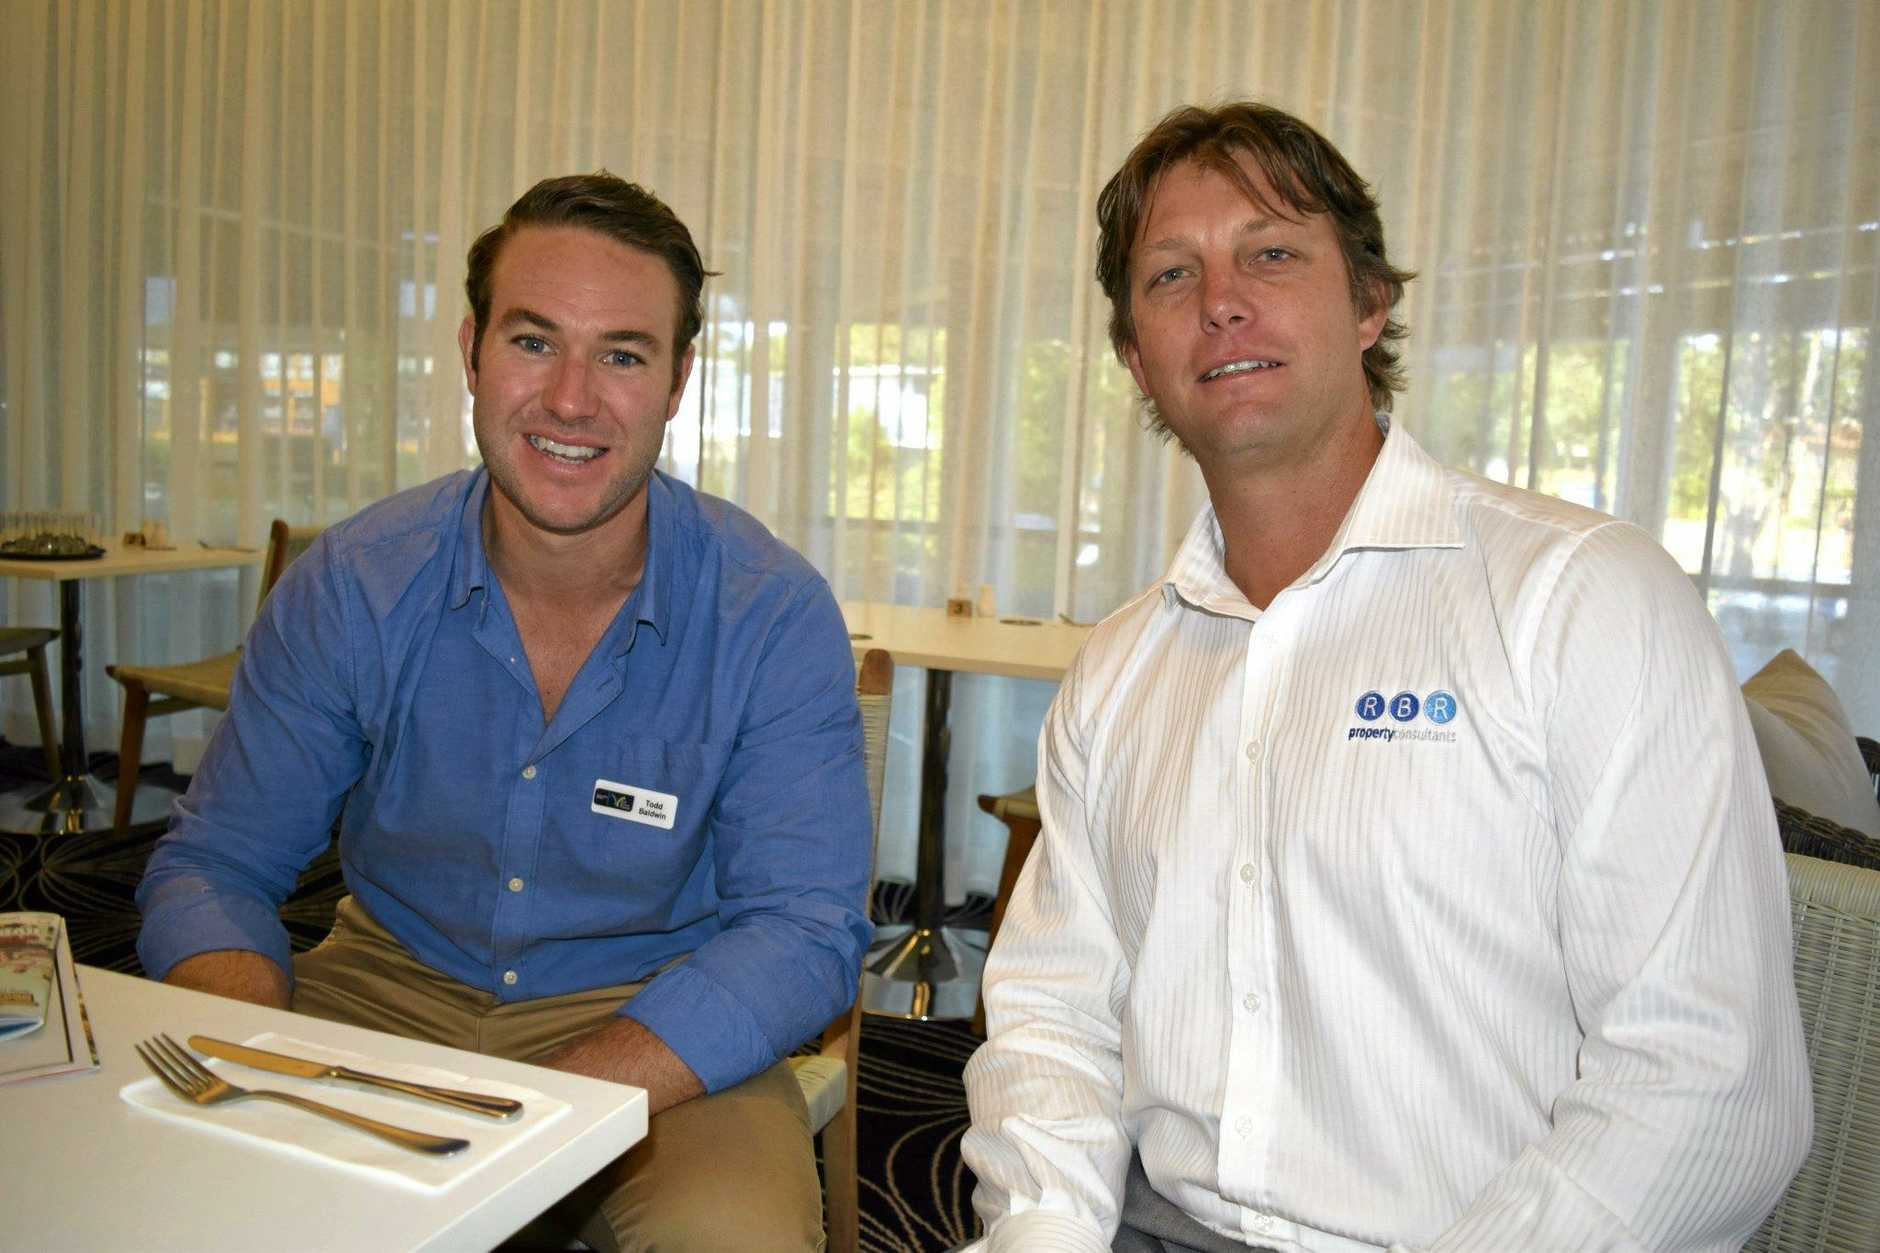 Todd Baldwin of the Northern Rivers NSW Business Chamber and Lenny McLennan of Rainbow Bay Realty at the Tweed Business Chamber breakfast, October 13, 2015.